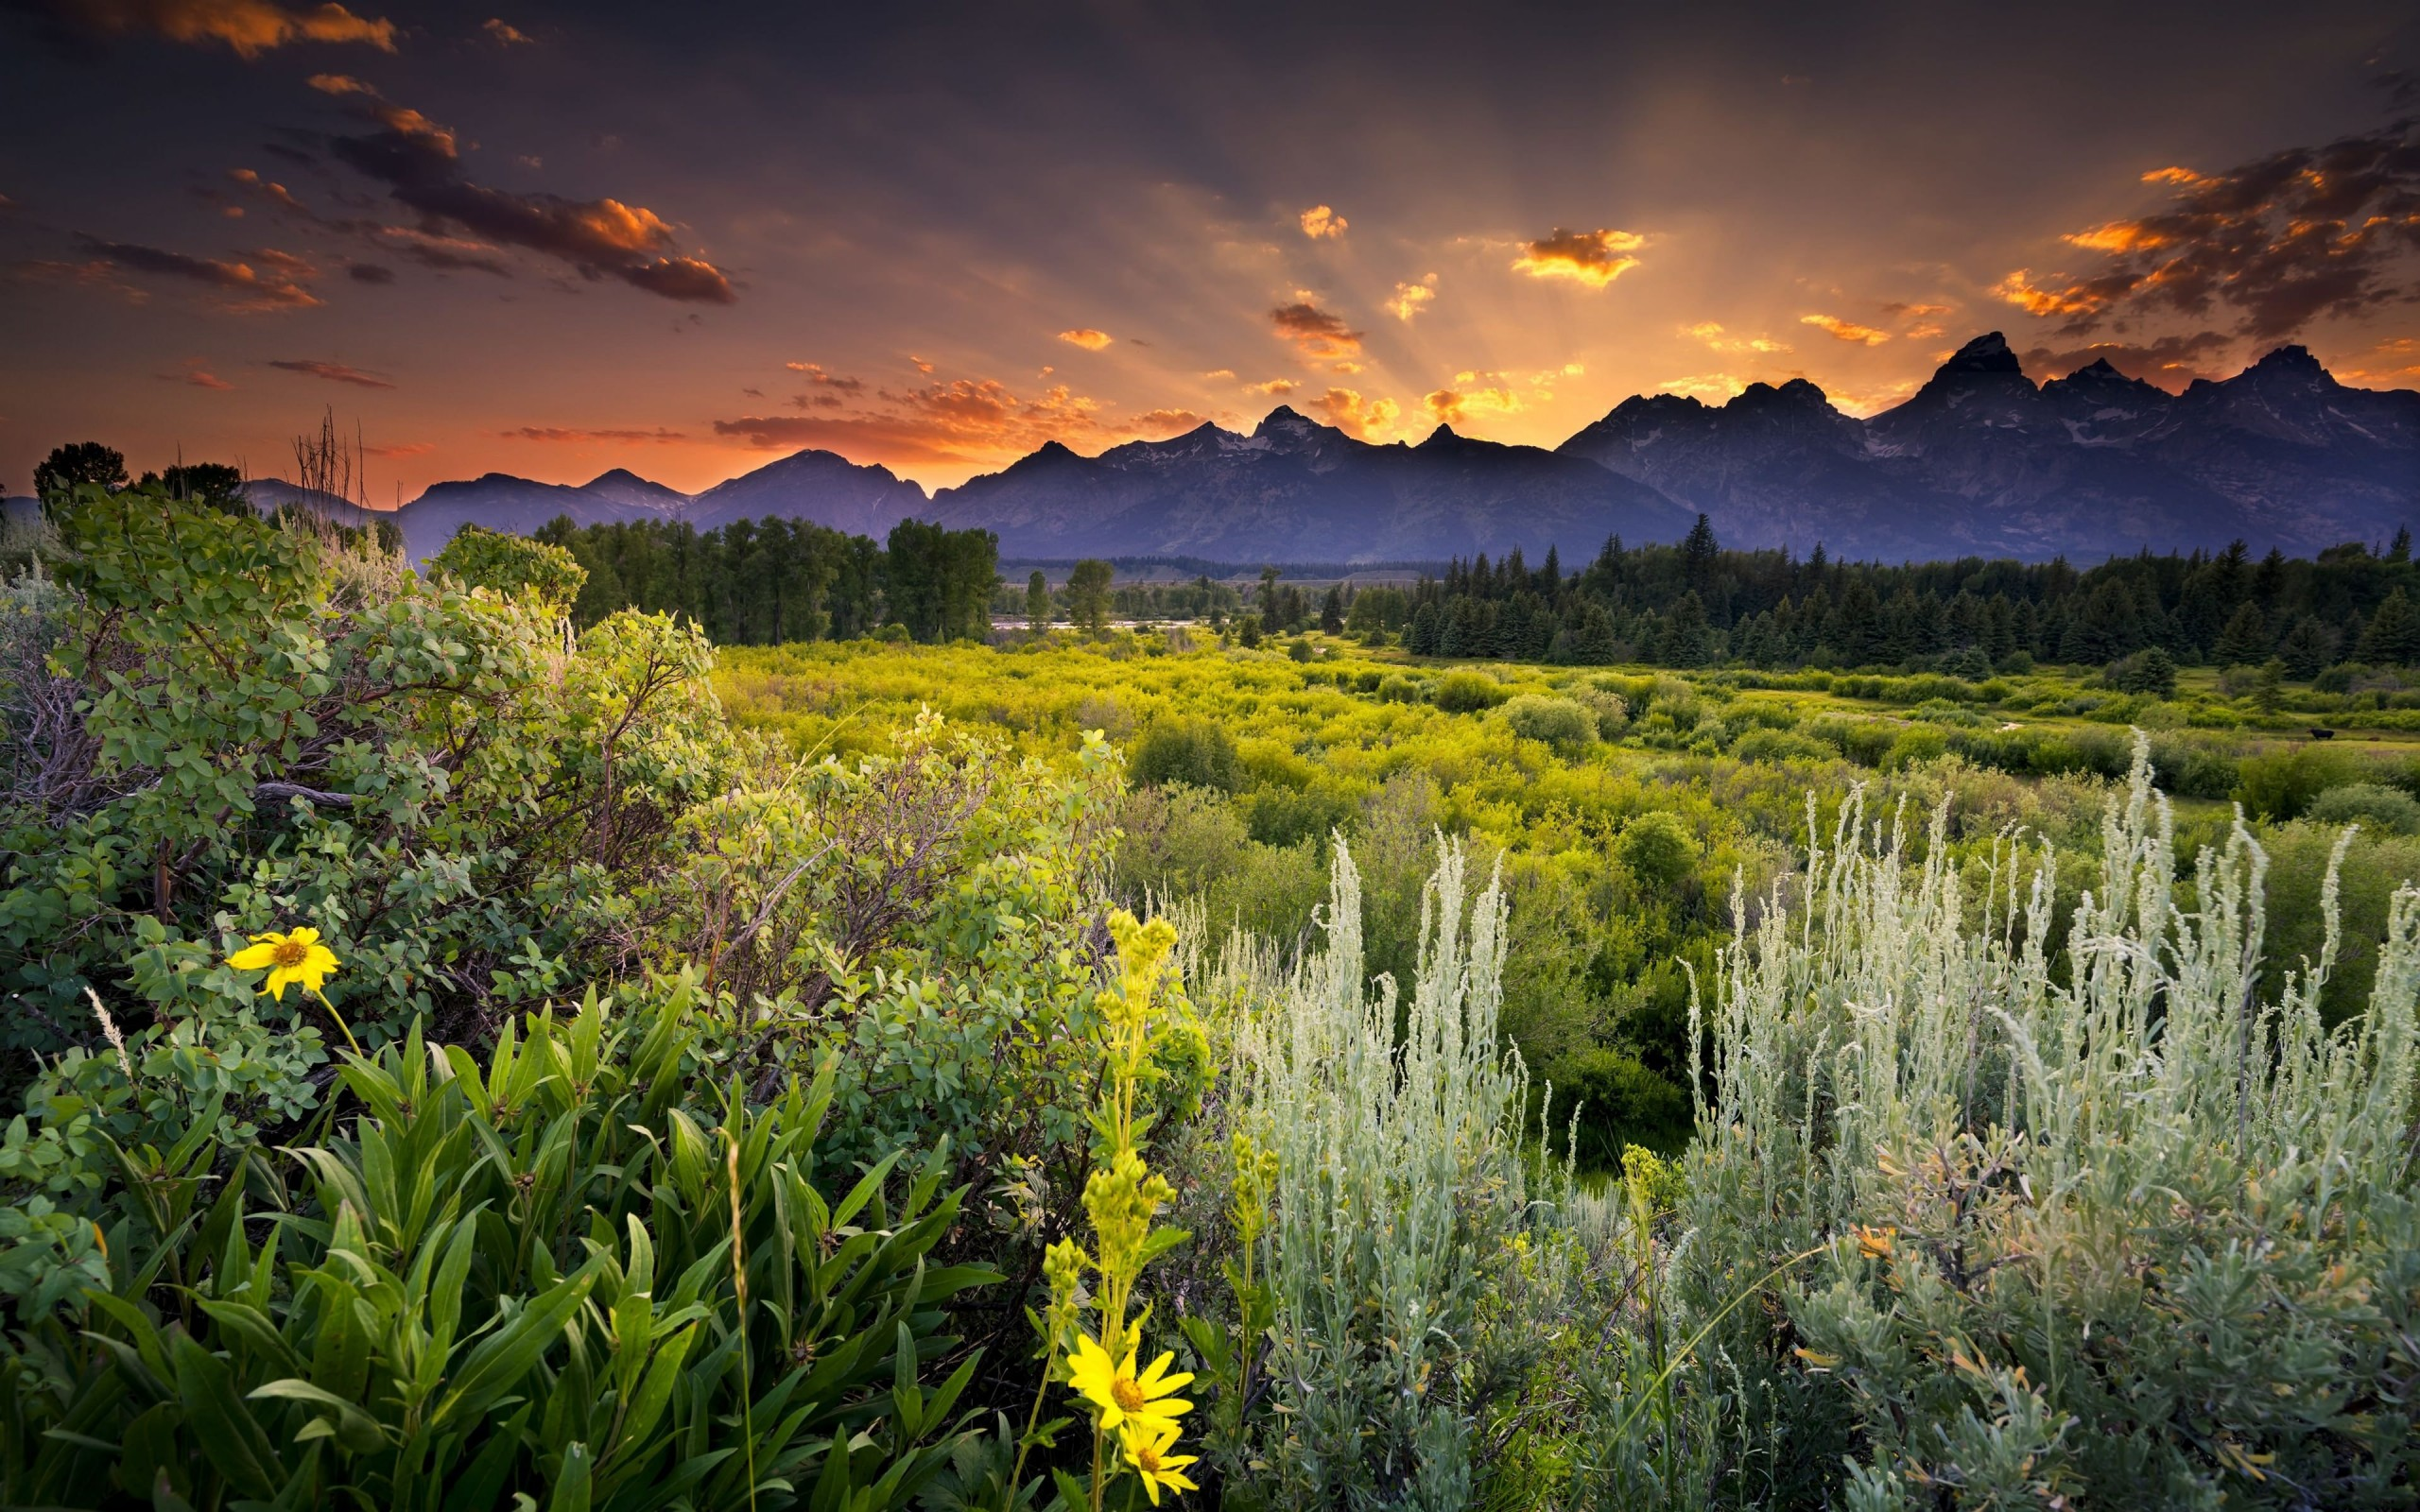 Sunset in Grand Teton National Park Wallpaper for Desktop 2560x1600